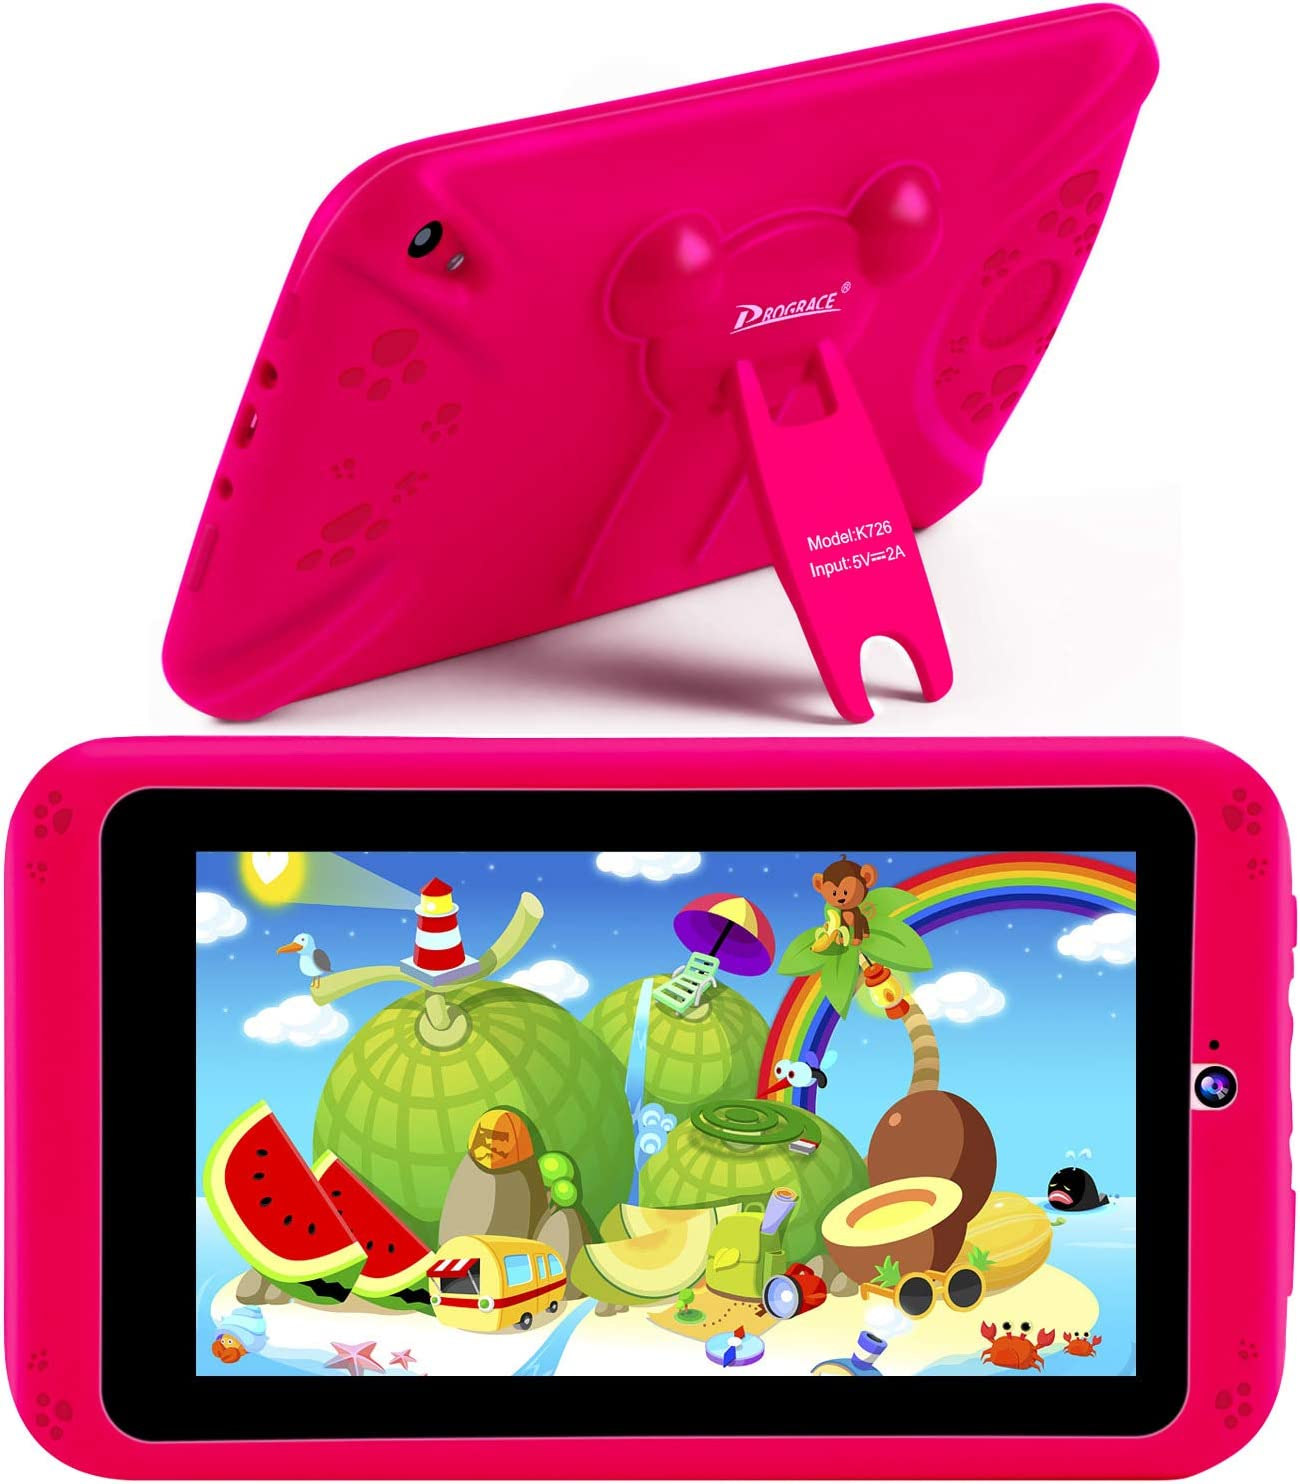 "PROGRACE Kids Tablets Android 9 QuadCore 2GB RAM 16GB ROM Learning Tablet for Kids Girls Toy Gift with Parental Control Toddler Children's Tablet 7"" IPS"